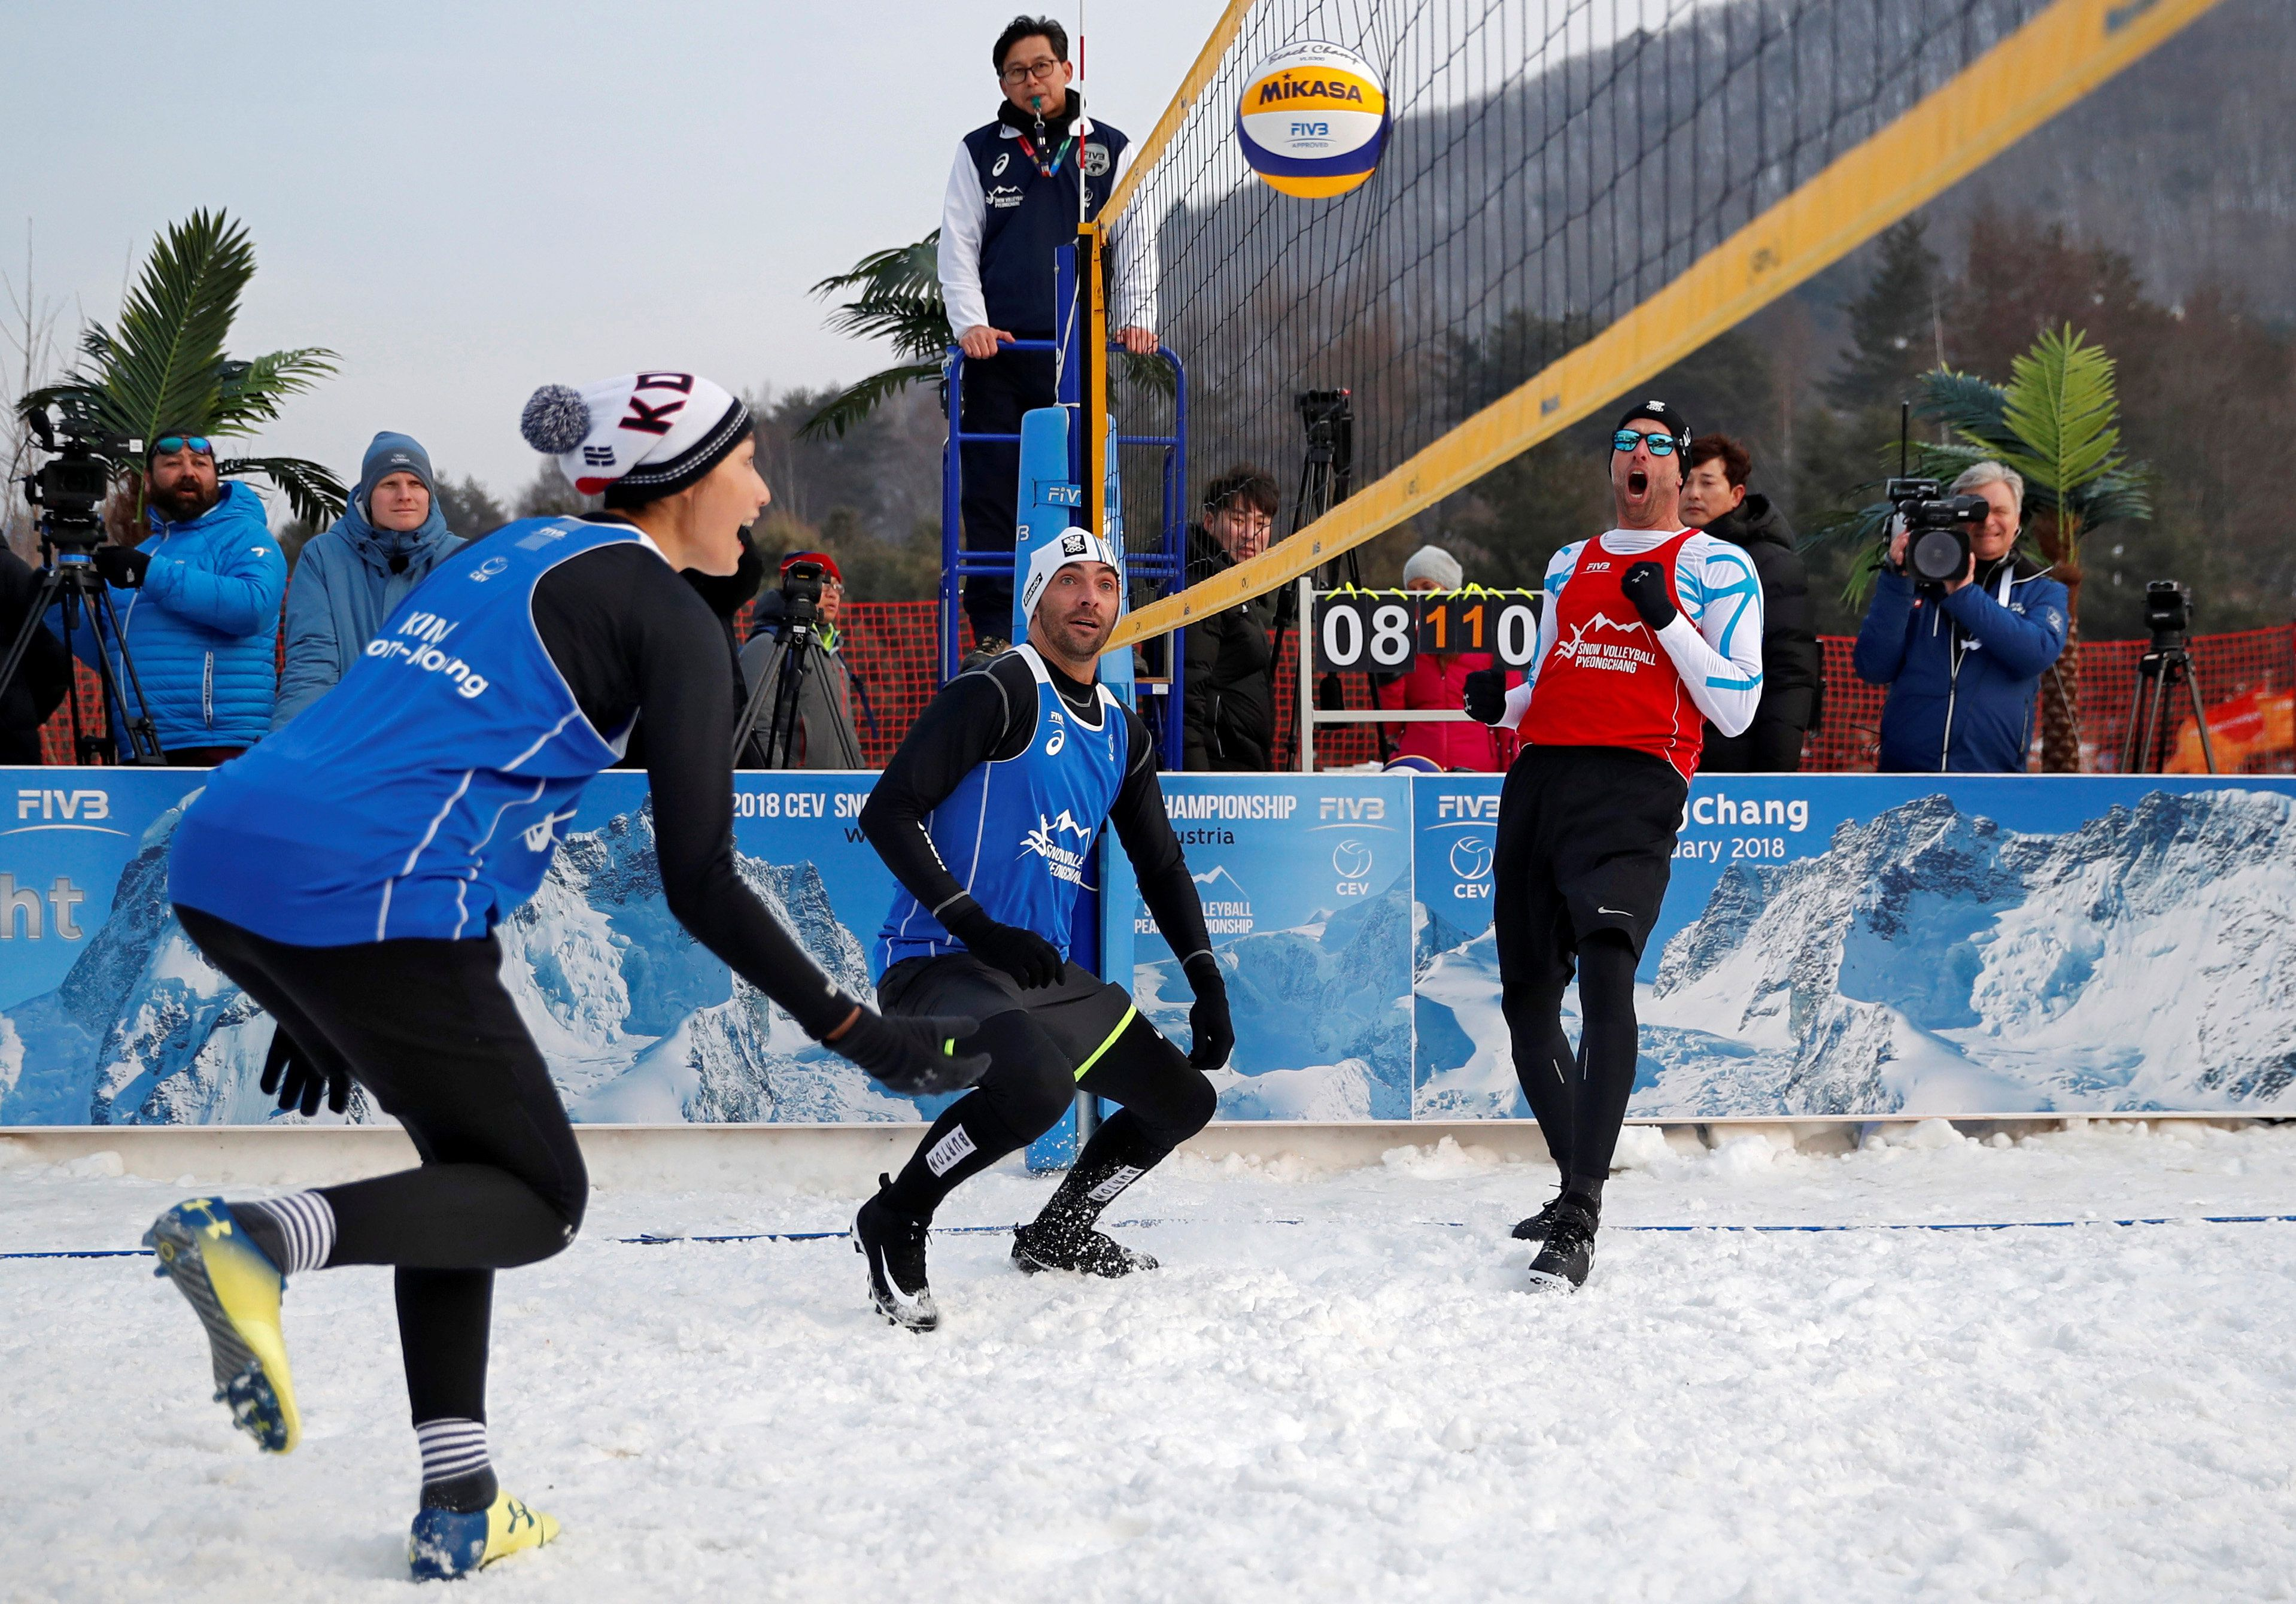 An exhibition game took place on Valentine's Day in Pyeongchang.